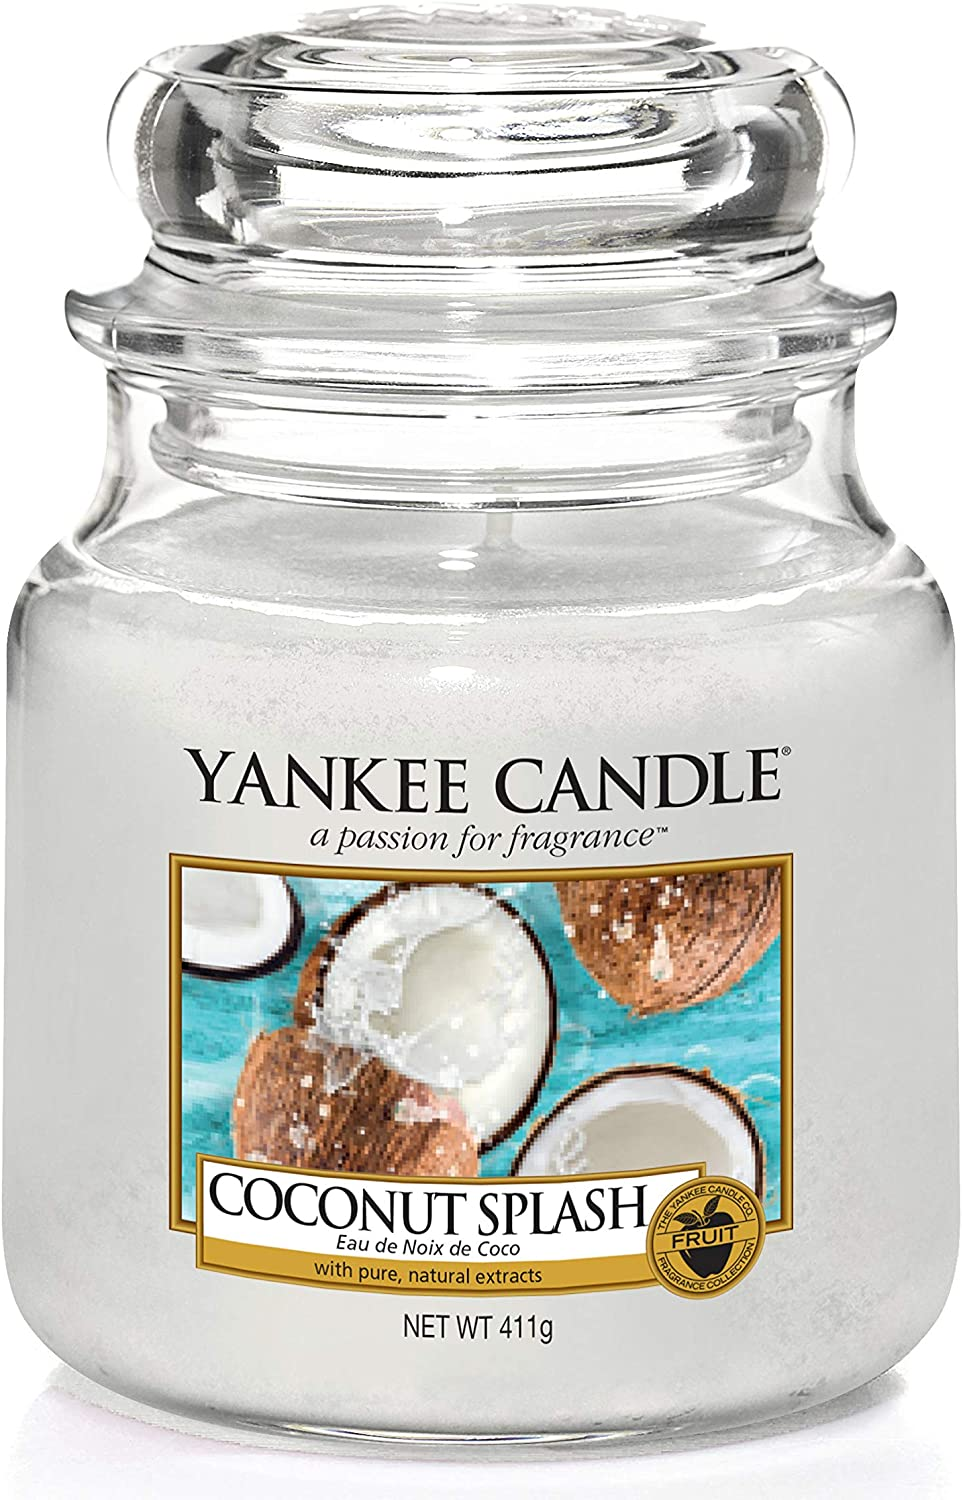 Yankee Candle Coconut Splash - Medium Jar